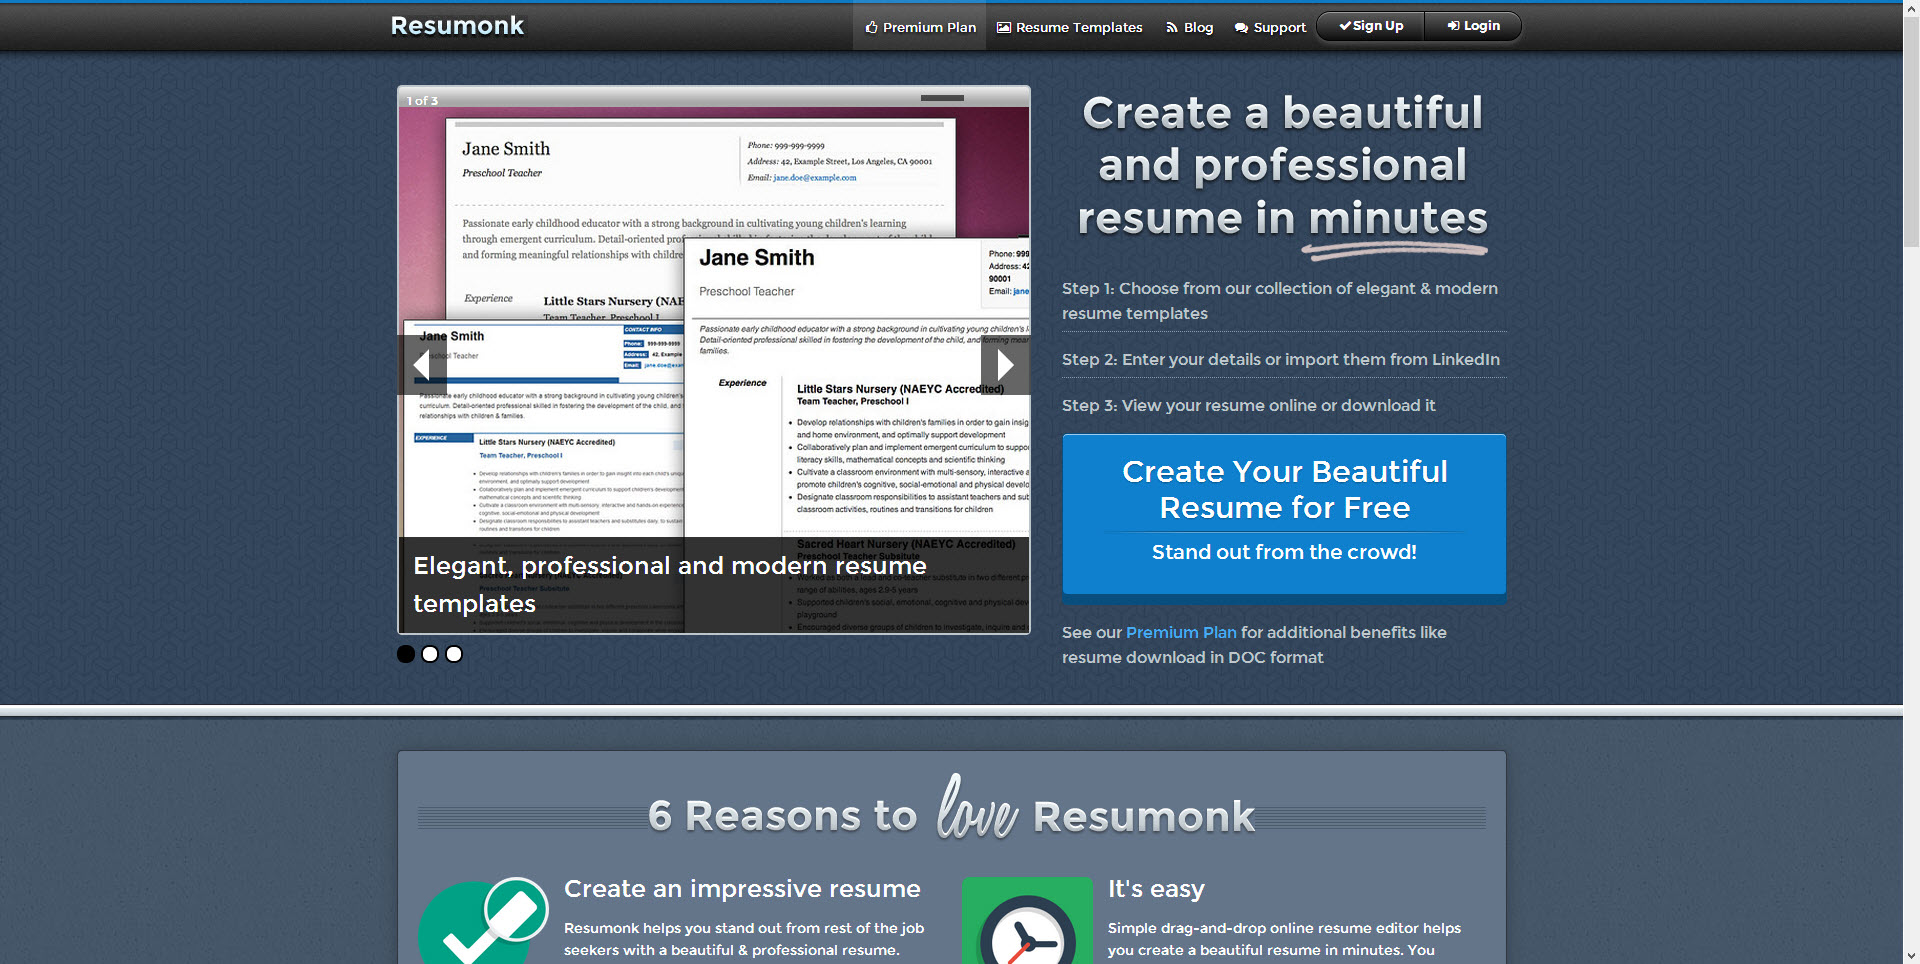 Resume Building Websites 1000 ideas about online resume builder on pinterest online resume template free resume samples and resume templates for students Resumonk